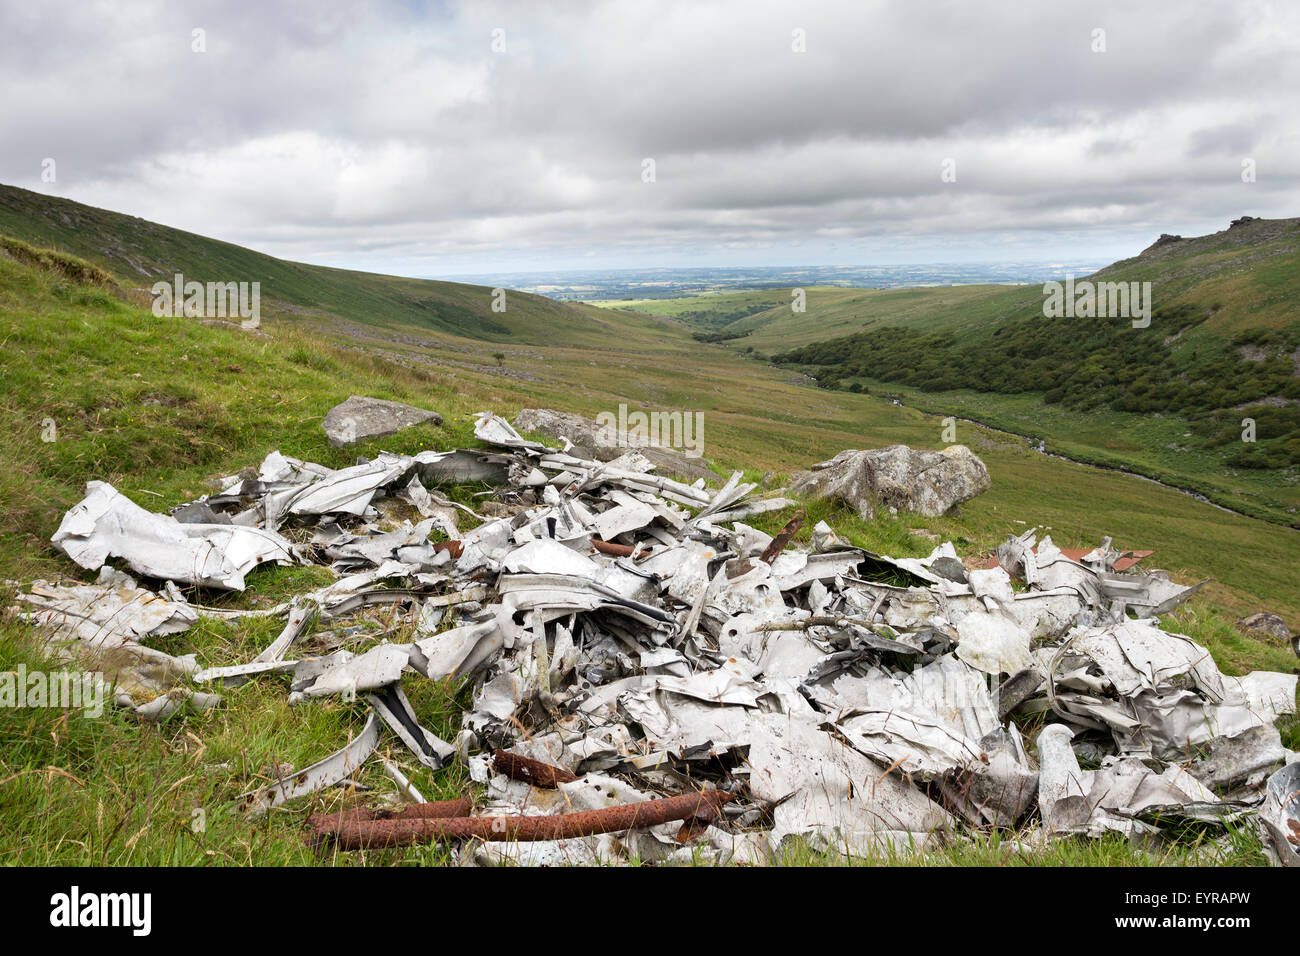 Wreckage of a Consolidated PB4Y-1 Liberator Aircraft Which Crashed During World War 2 Slipper Stones, Dartmoor, - Stock Image